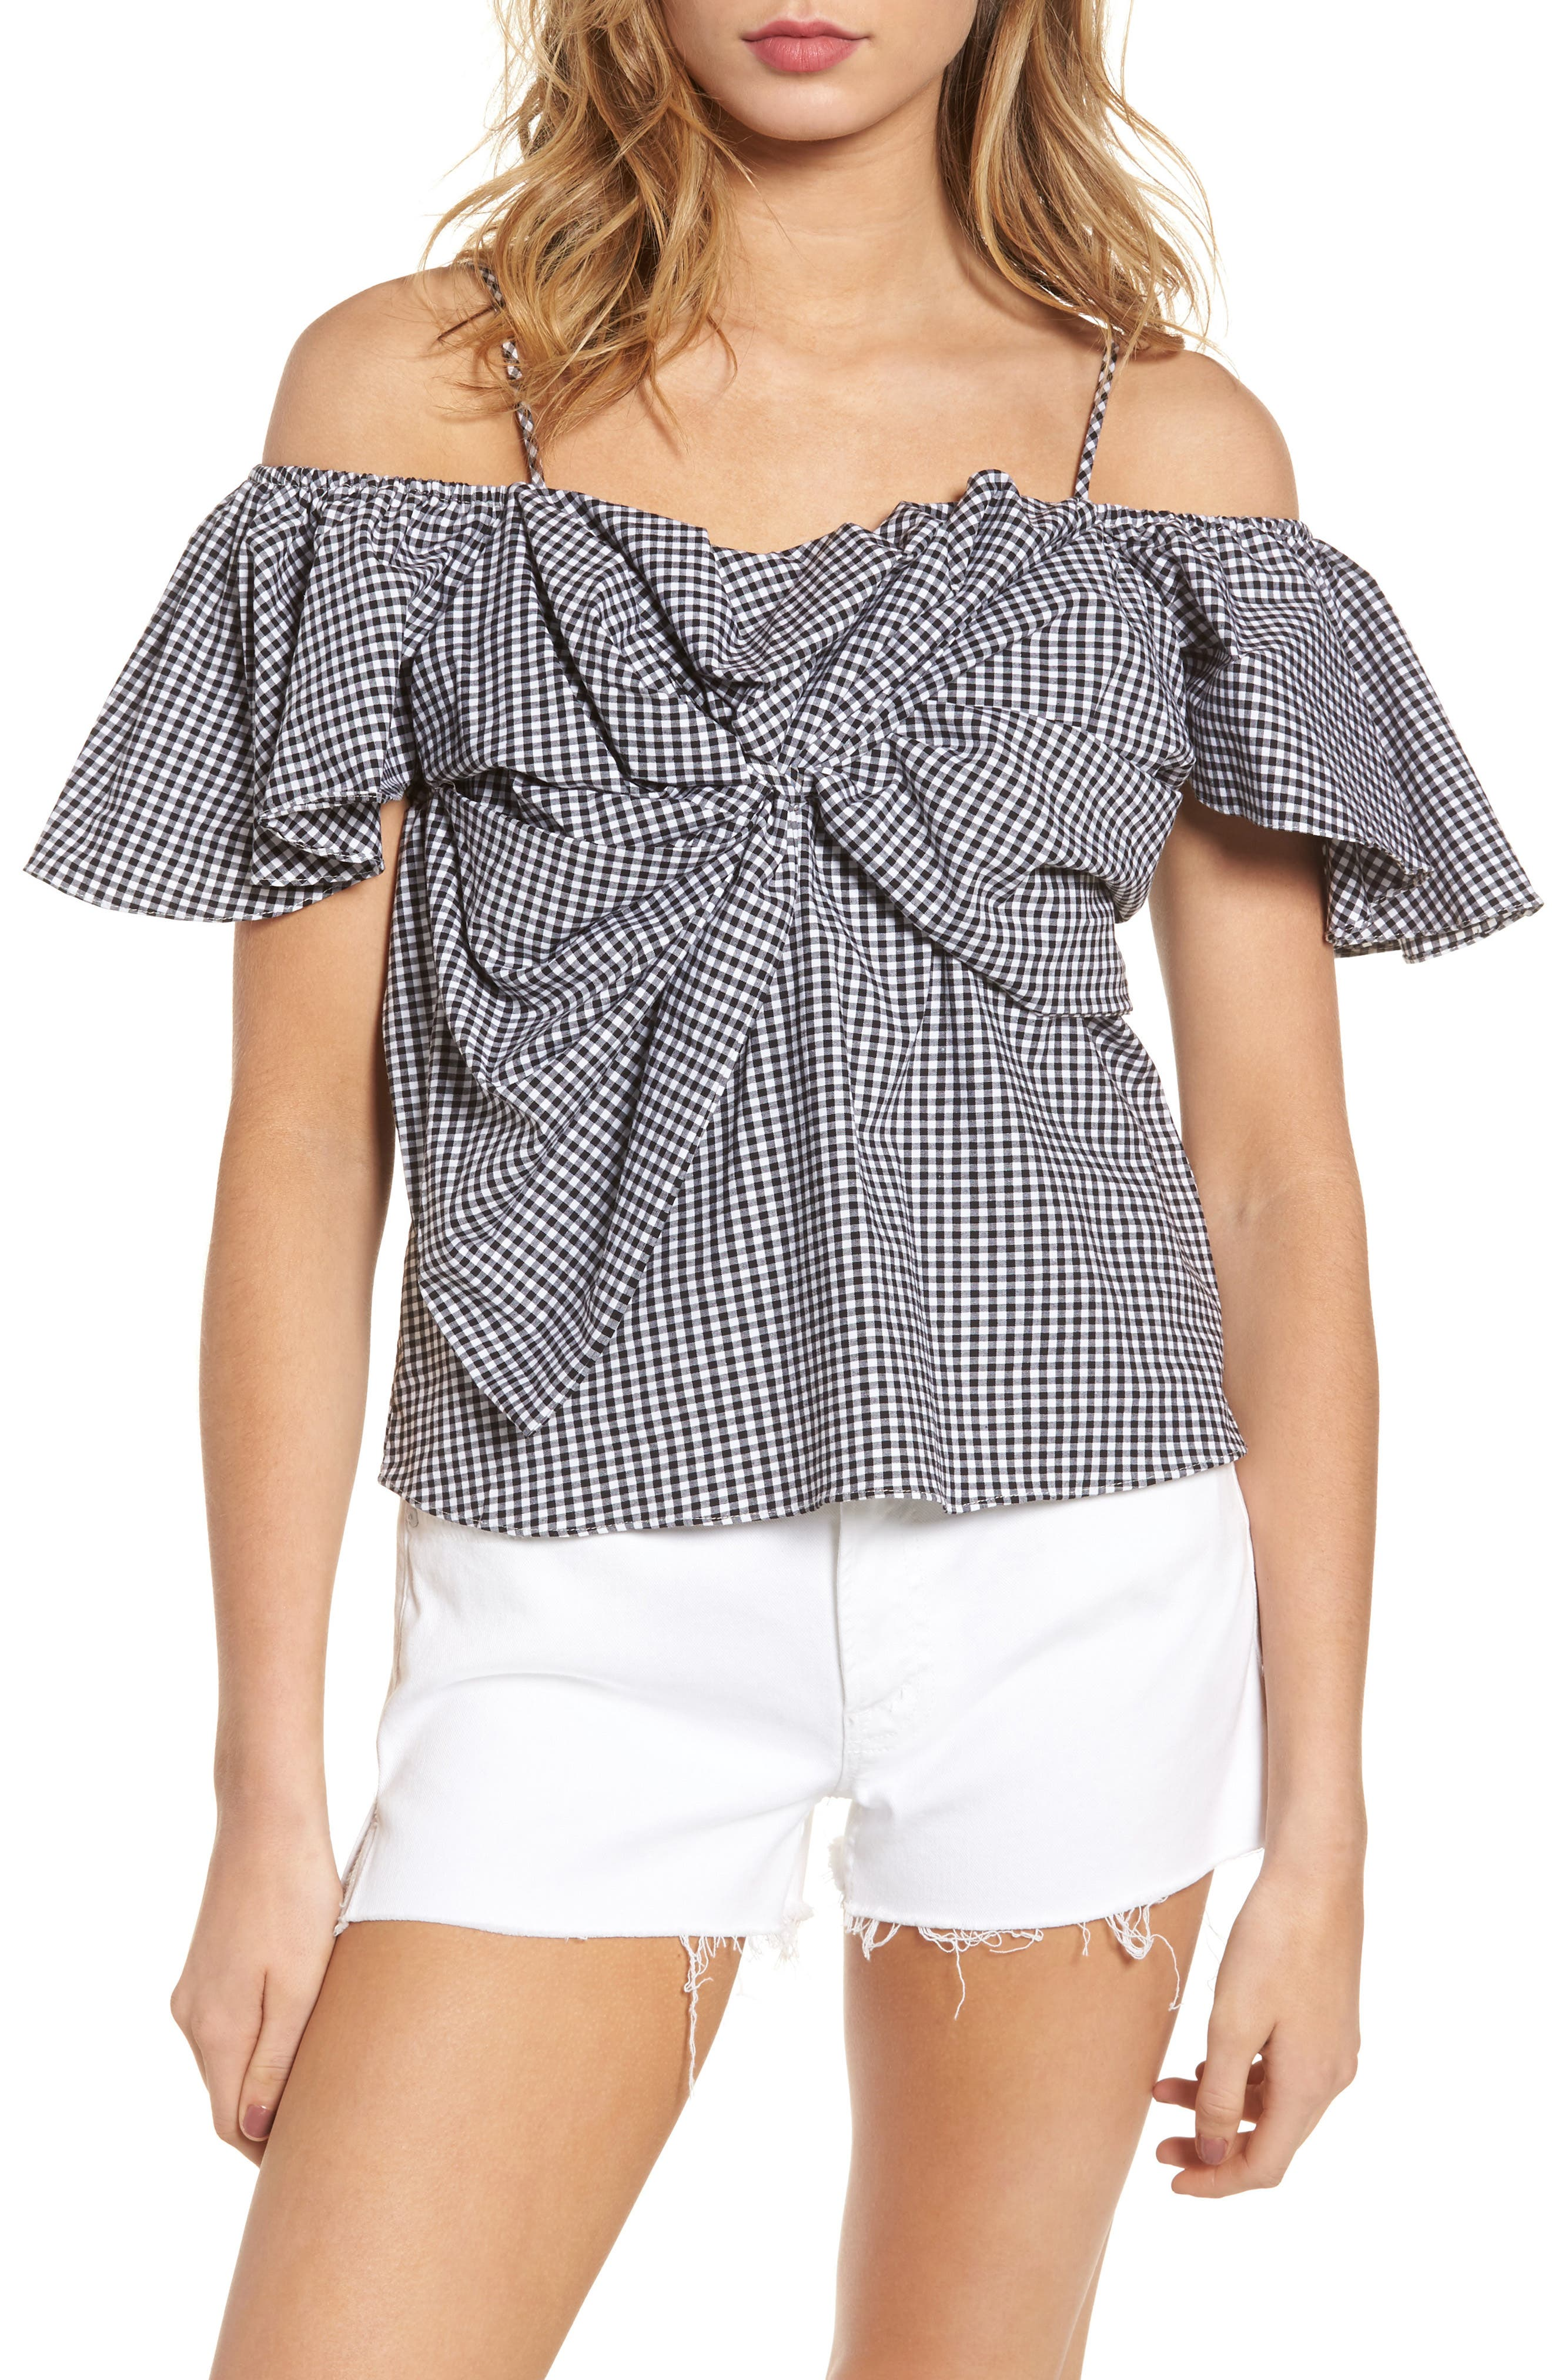 Gaelle Off the Shoulder Top,                         Main,                         color, Fl15